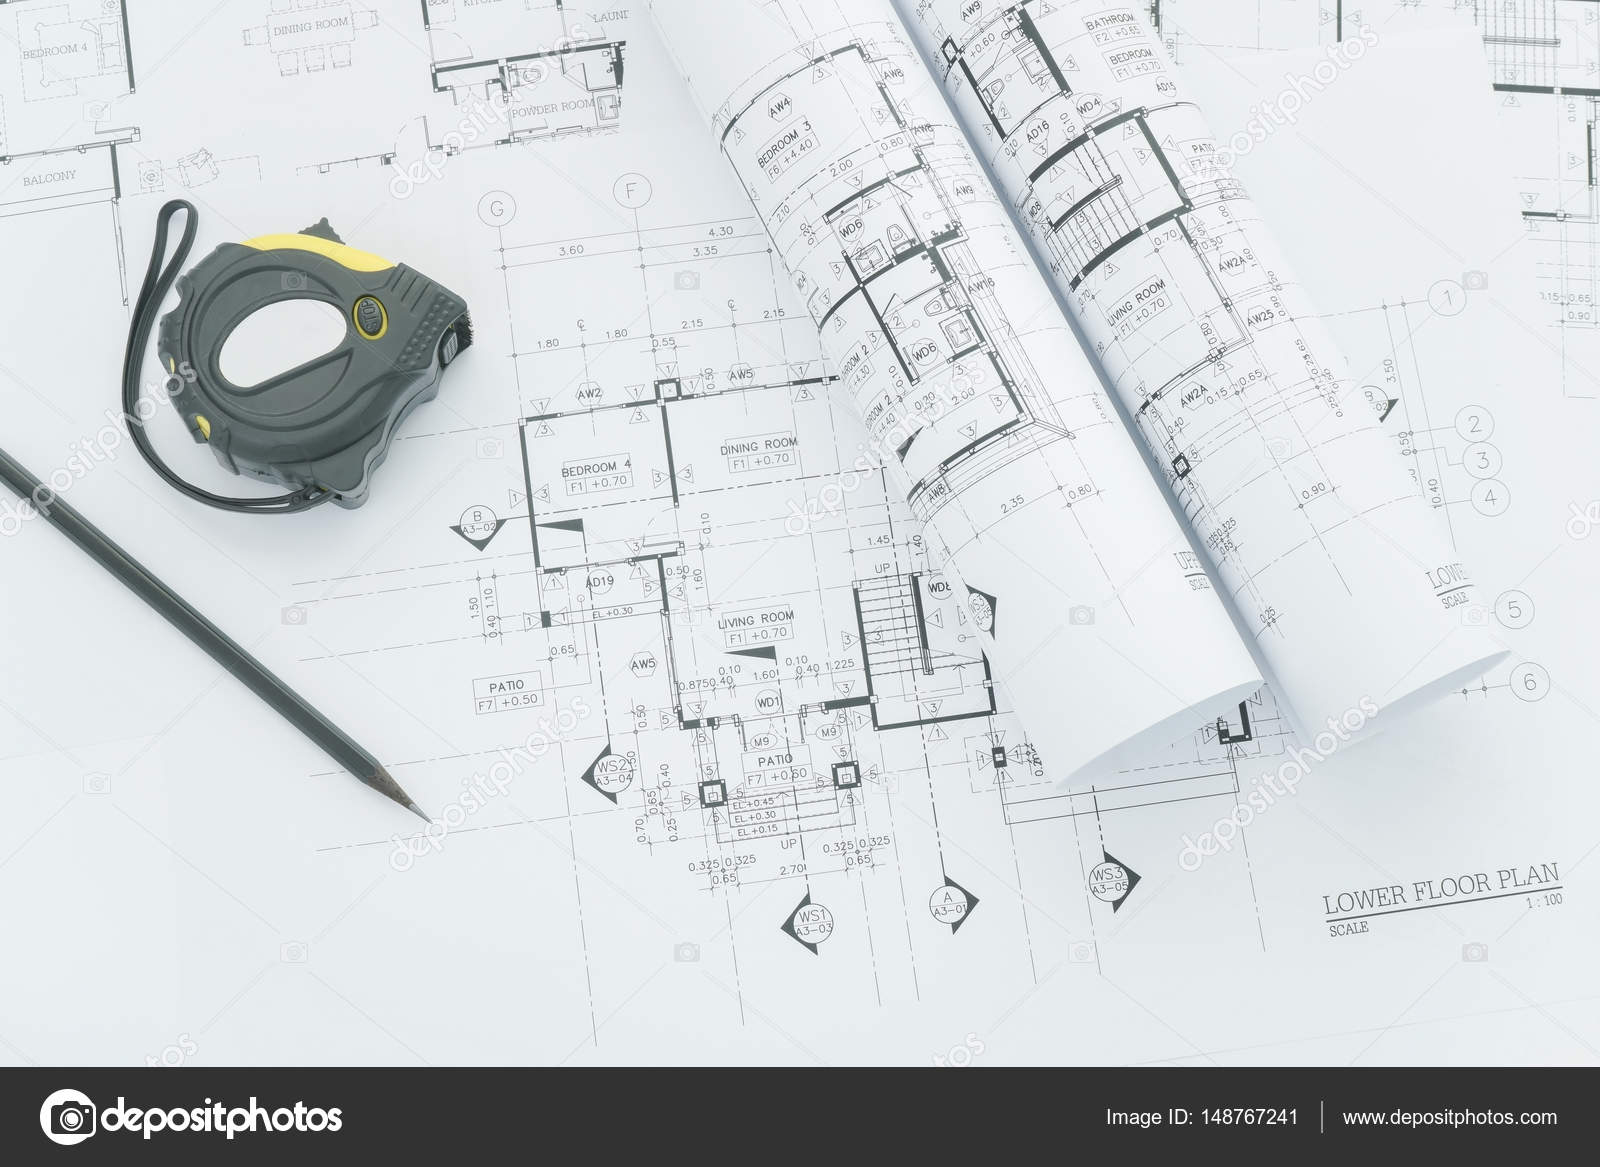 Architects workplace architectural blueprints with measuring tape architects workplace architectural blueprints with measuring tape safety helmet and tools on table top view photo by worldwidestock malvernweather Image collections